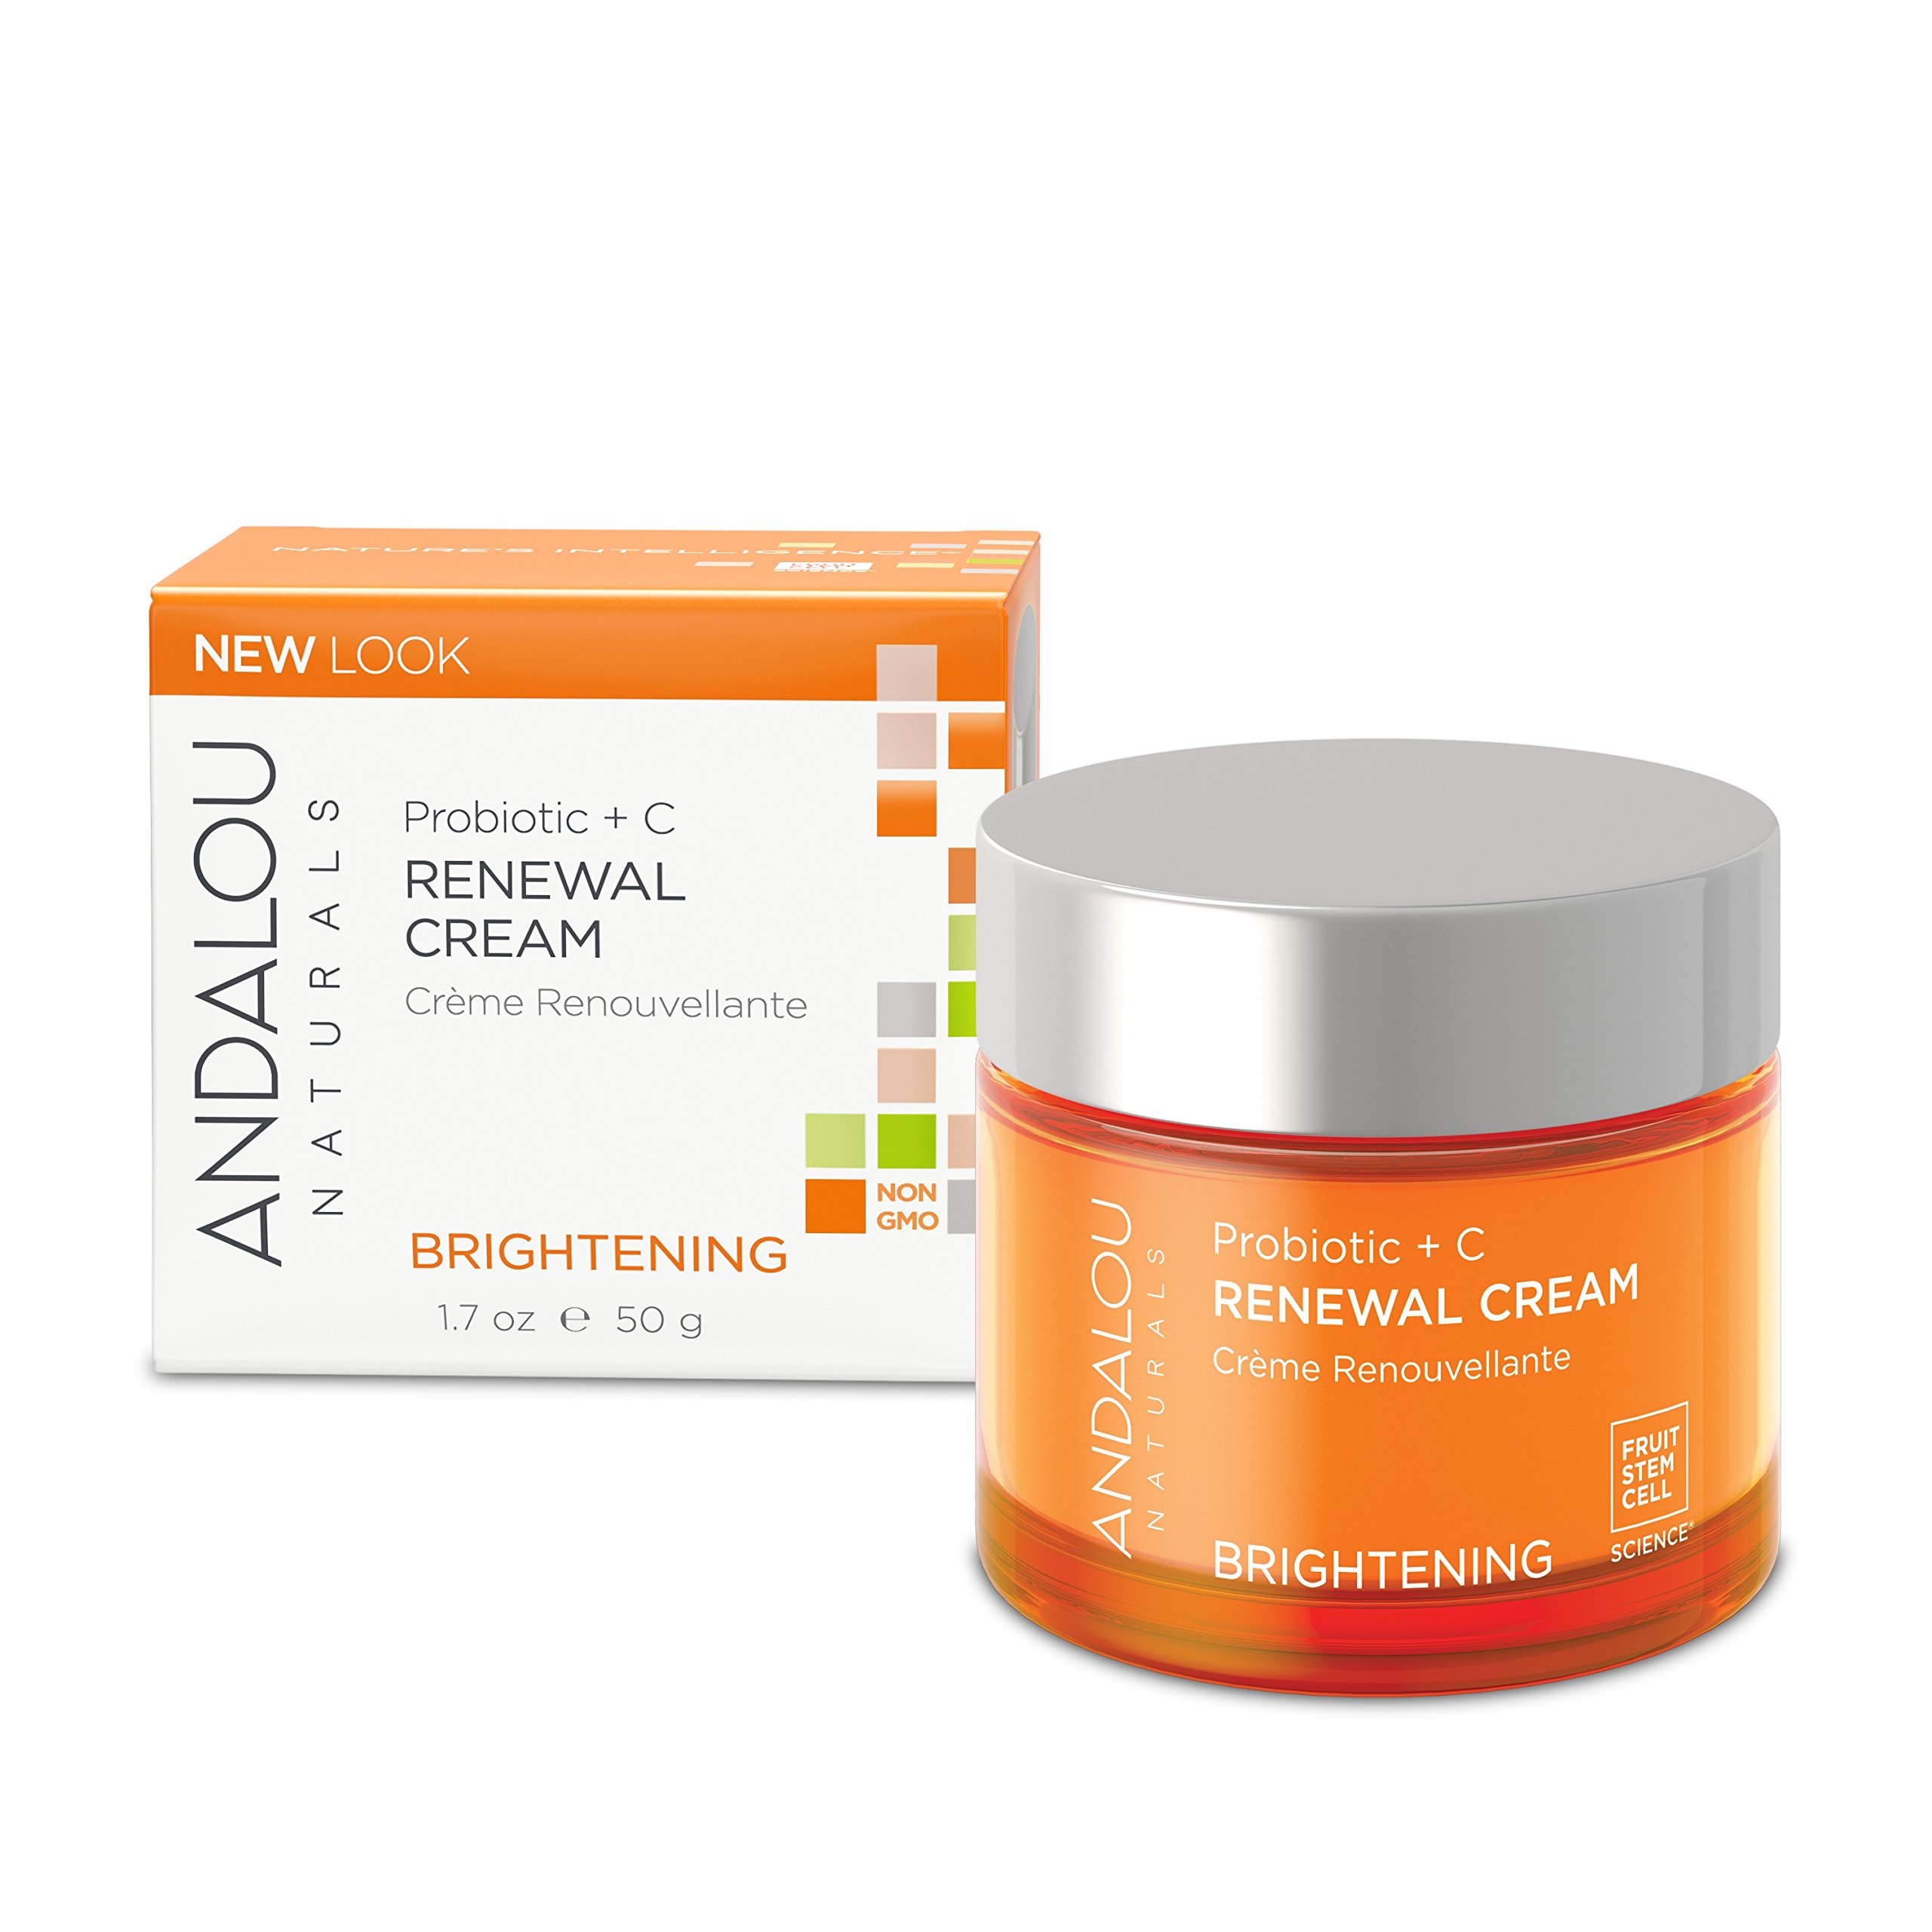 Andalou Naturals Probiotic + C Renewal Cream, 1.7 oz., Vitamin C and Probiotics Help Give Skin A Bright, Balanced, and Healthy Looking Glow, for Normal and Combination Skin